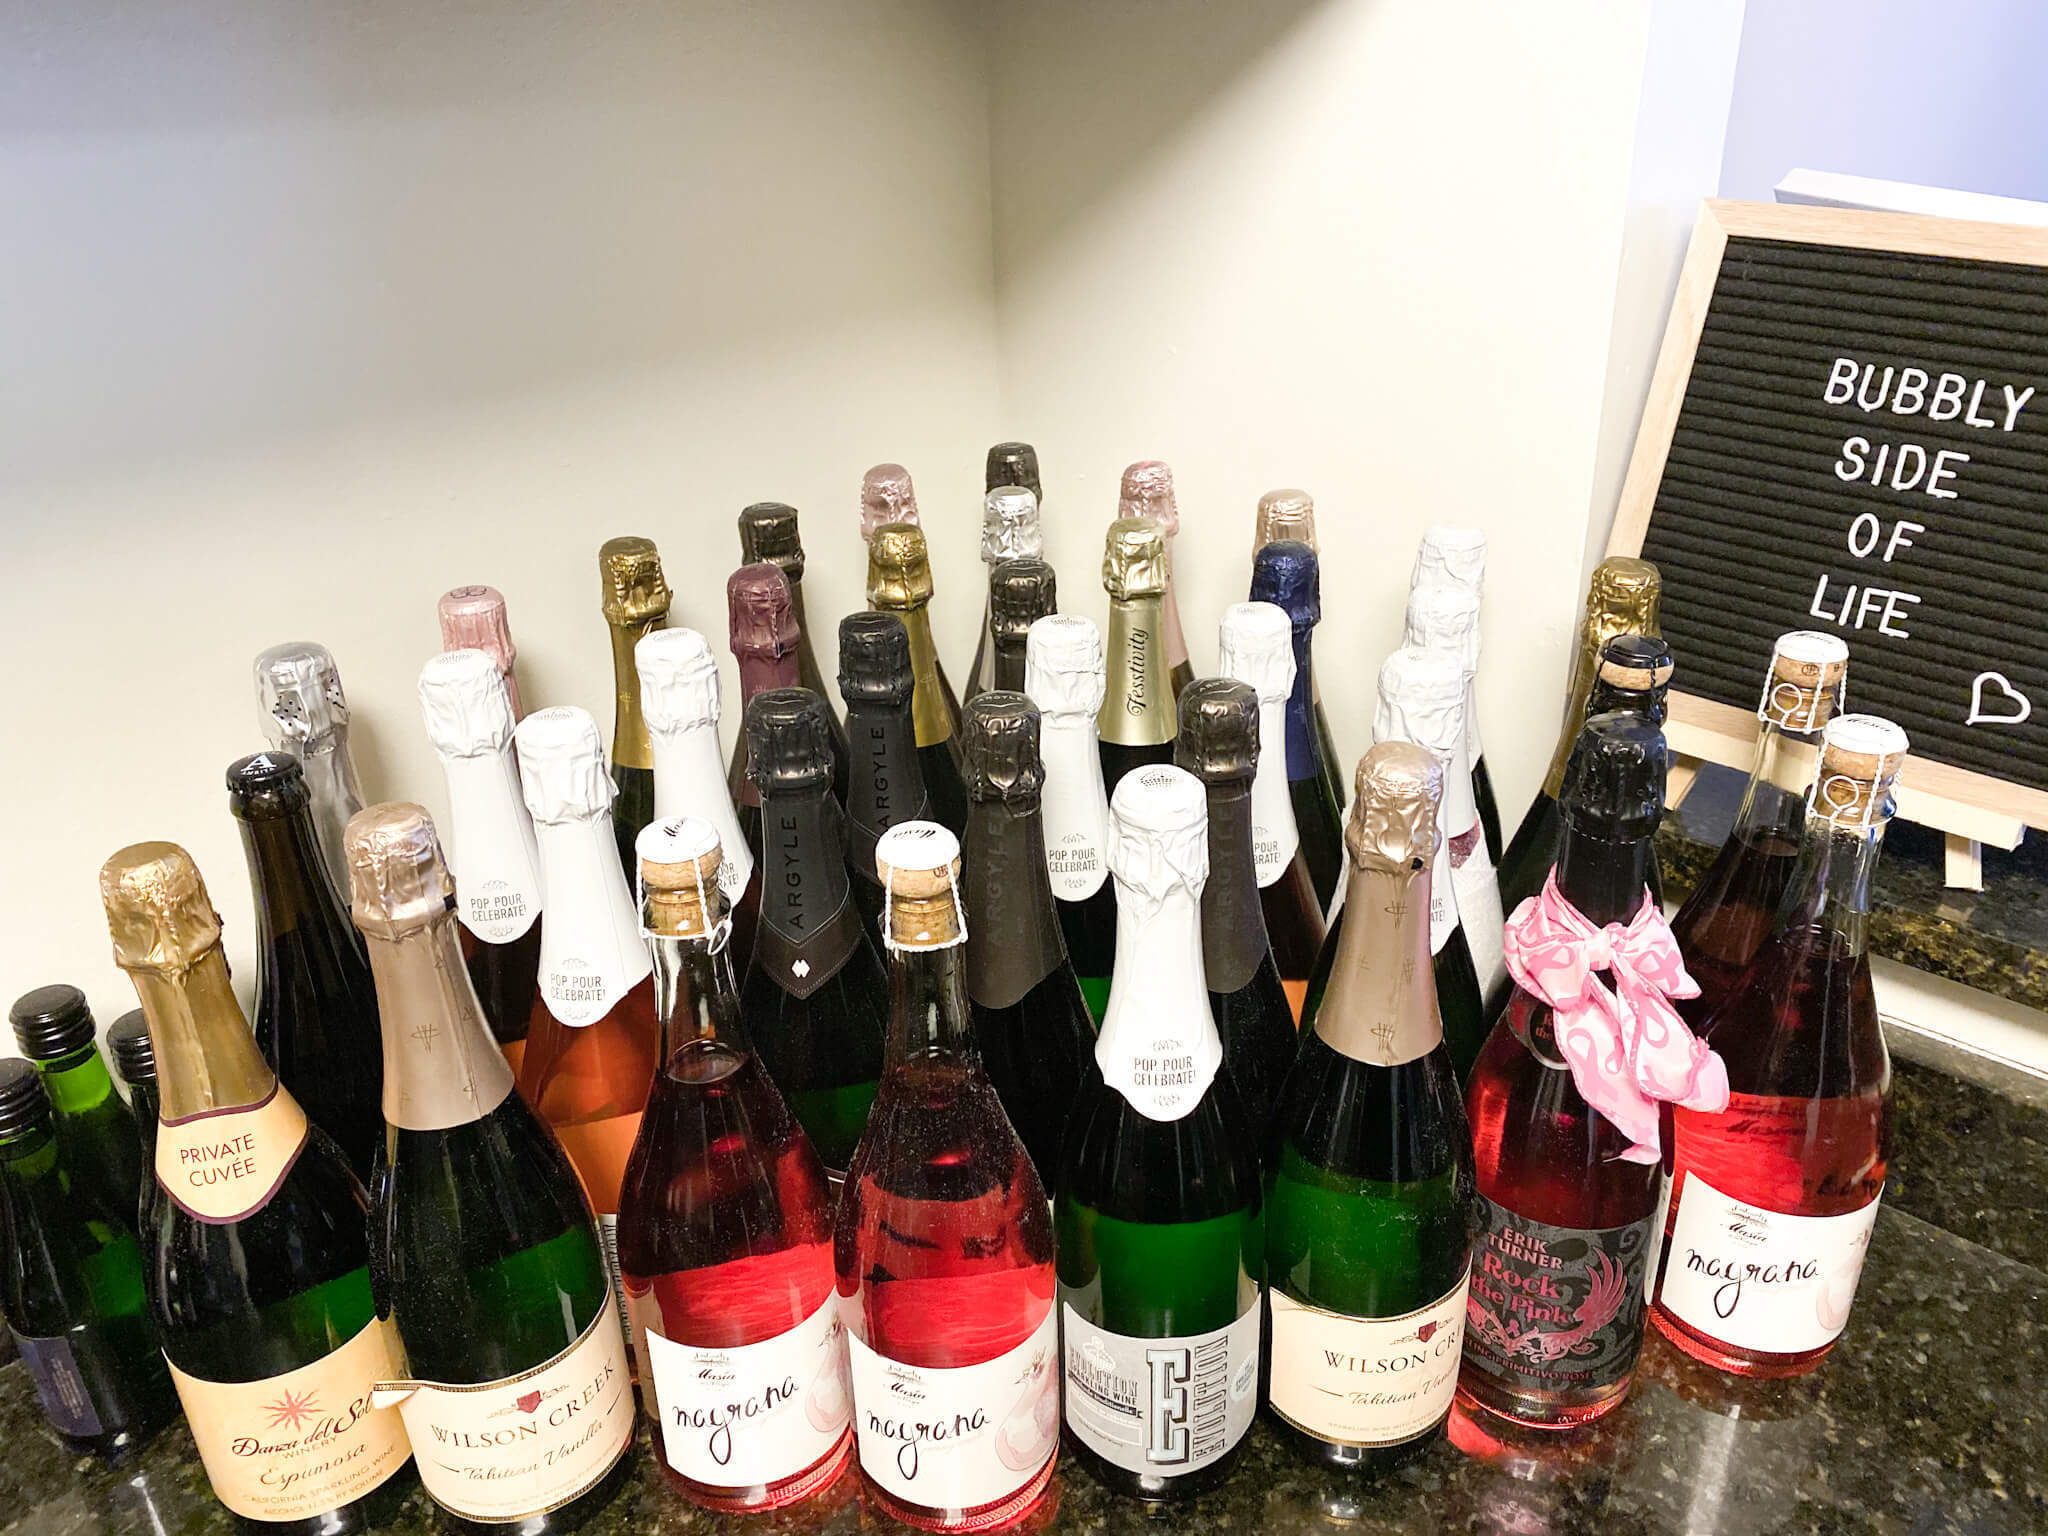 How to Store Champagne When Opened and Enjoy a Bottle of Bubbly Guilt Free